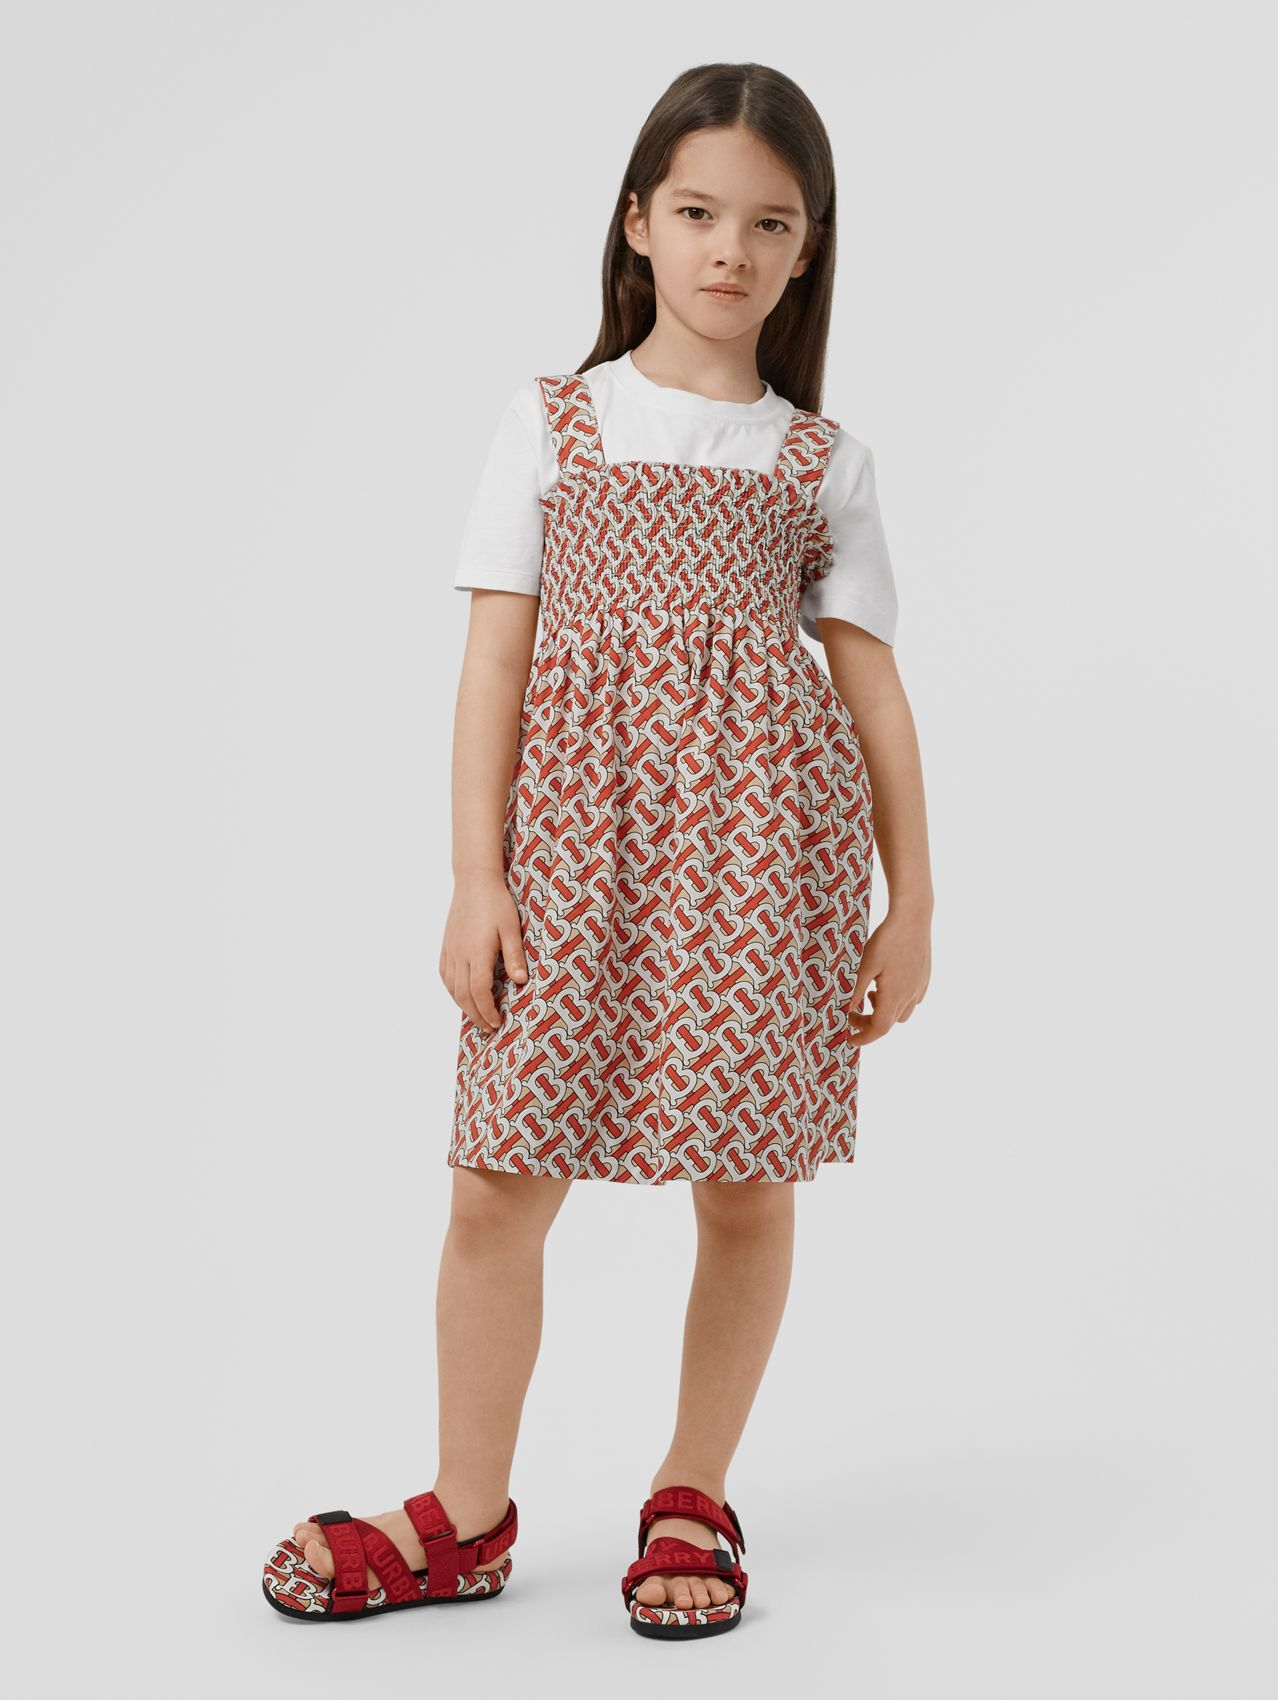 Robe en popeline de coton Monogram avec smocks in Rouge Vermillon